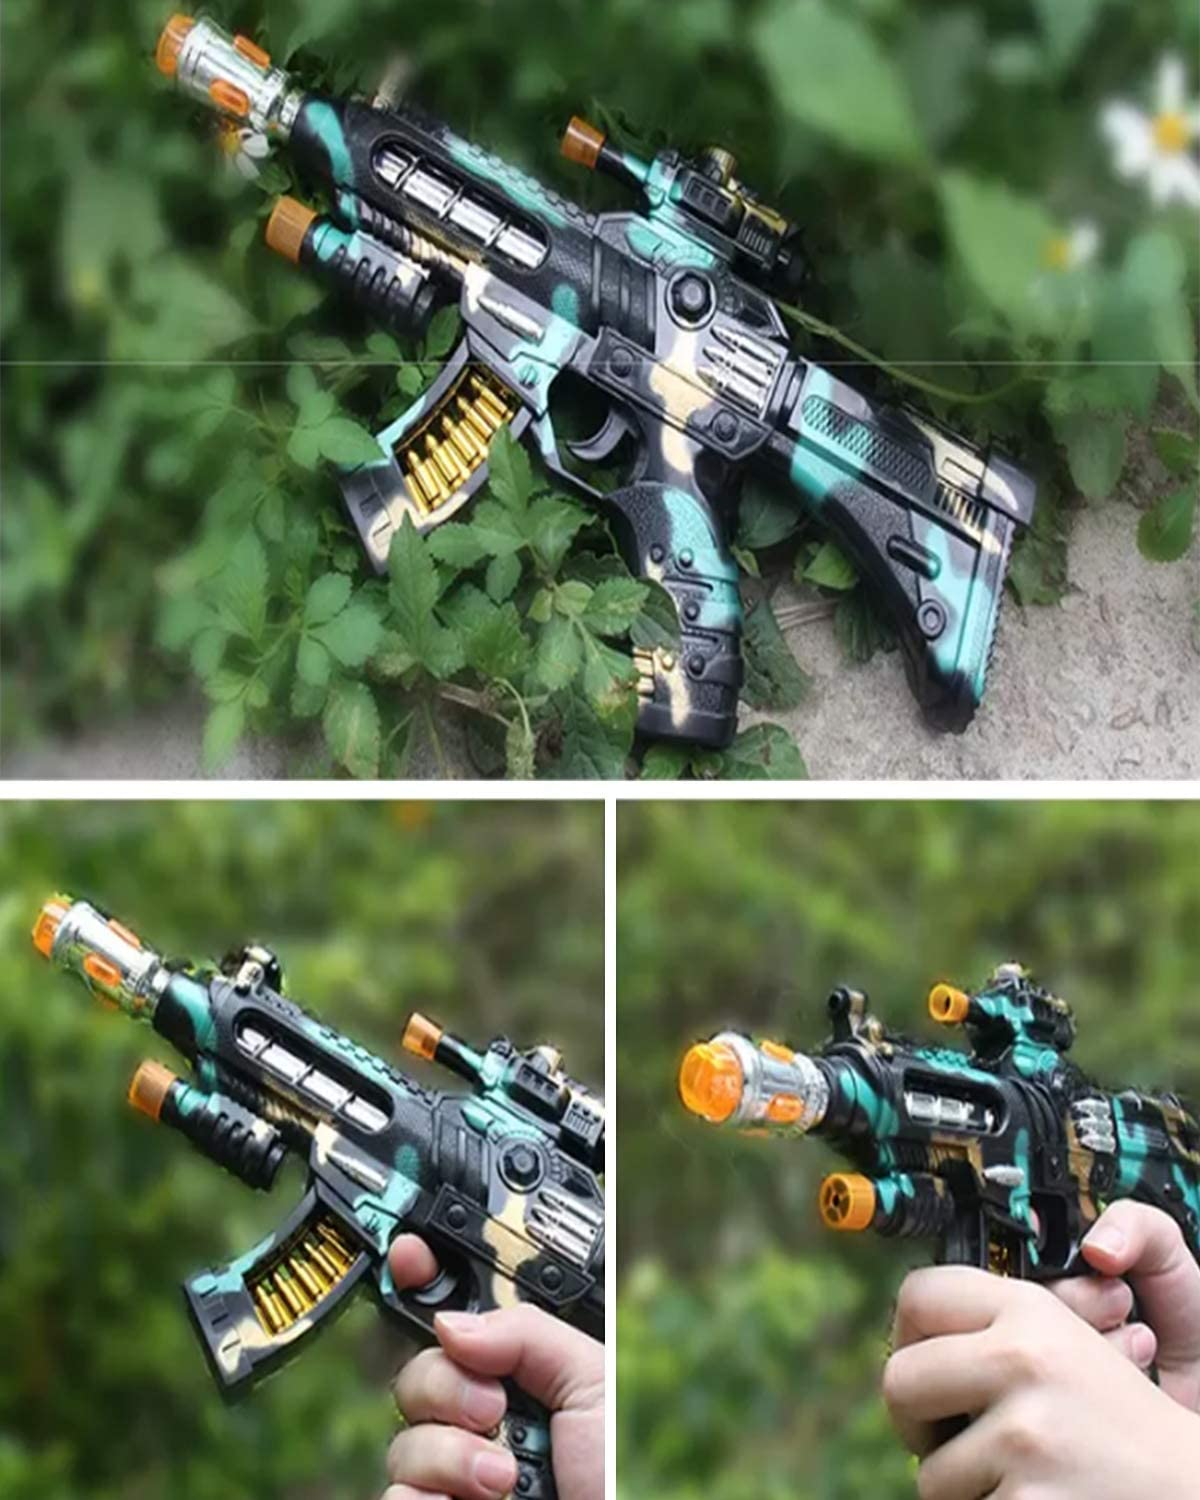 Rifle with Dazzling Light and Amazing Sounds and Unique Movements a Great Gift for Boys and Girls DAXHU Childrens Toy Gun